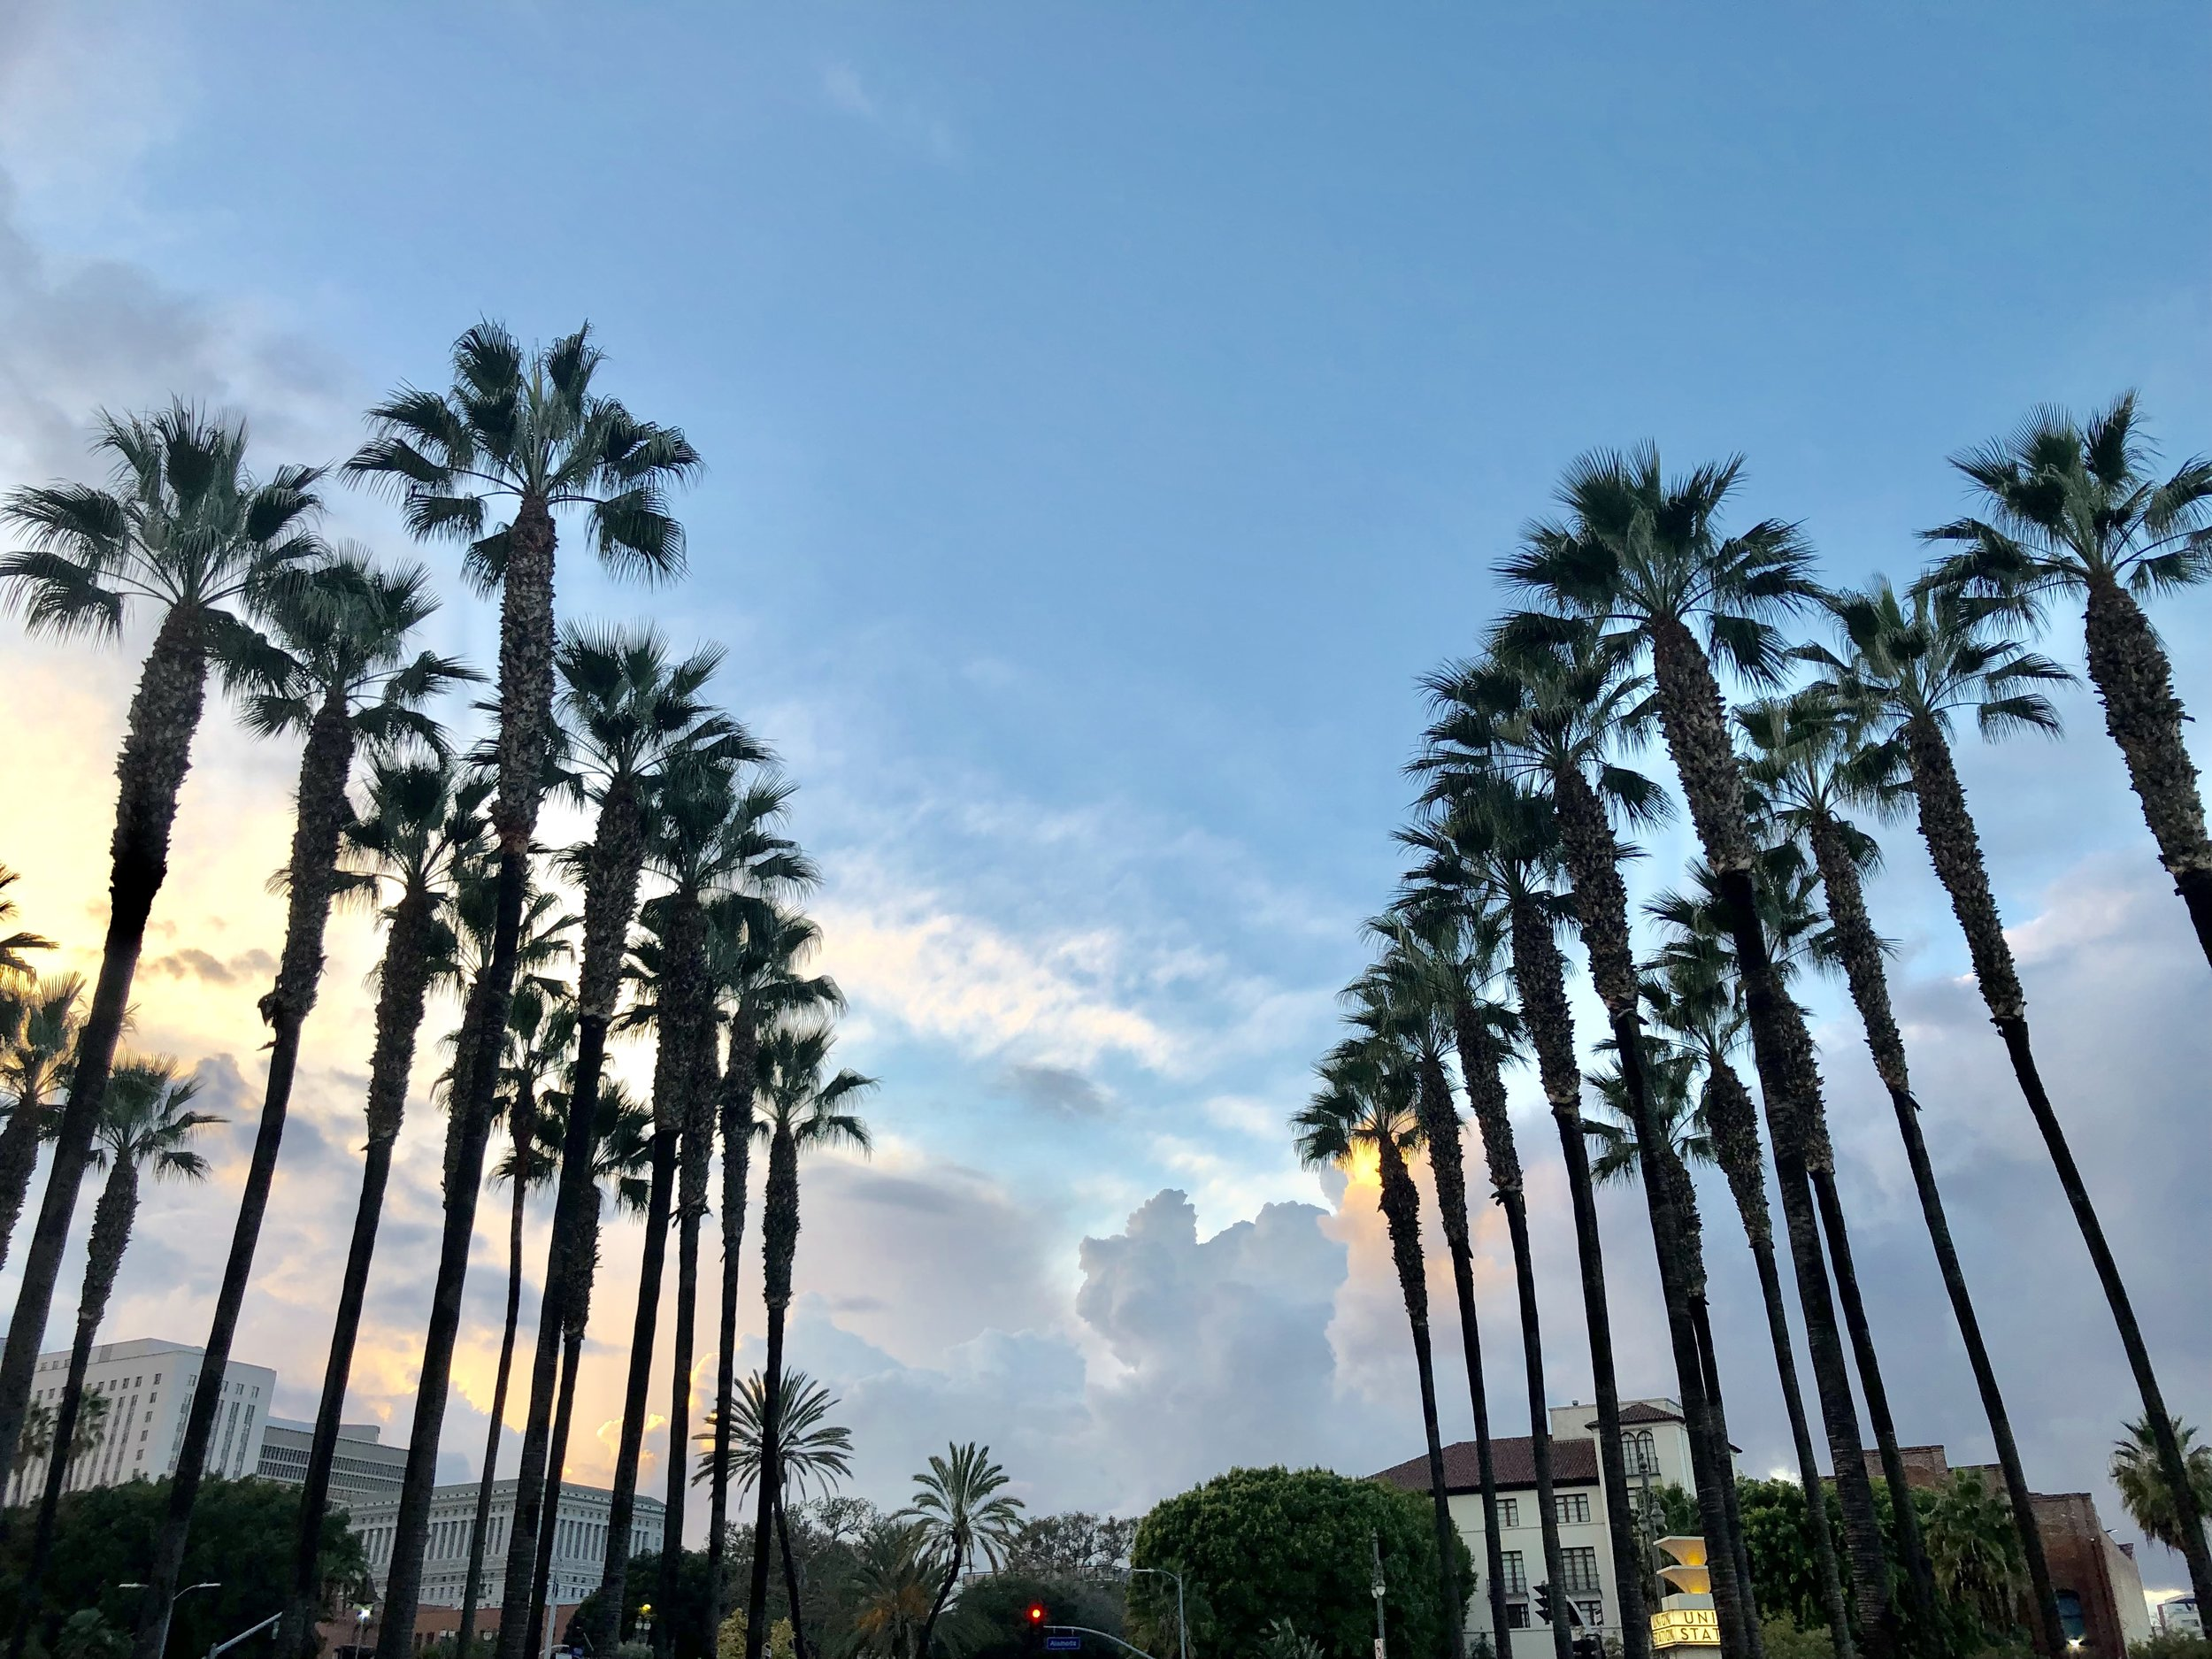 The palm trees and sunset by Union Station in Los Angeles are just a fraction of the reason this location is perfect for a Los Angeles personal branding shoot.